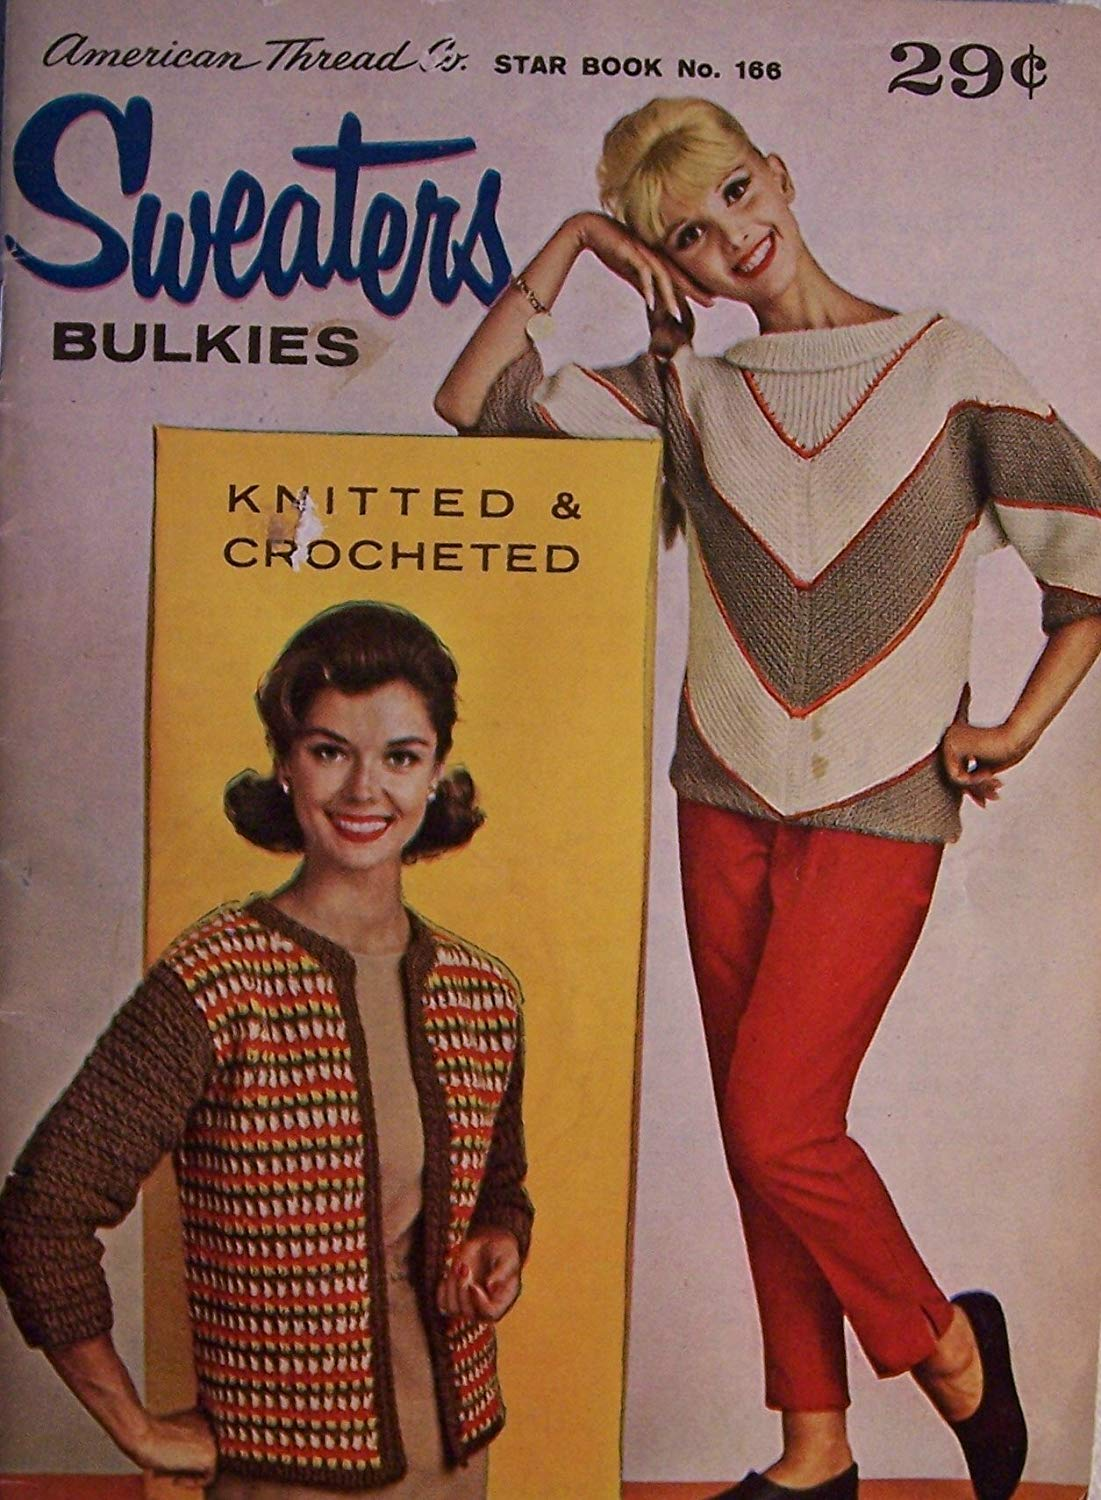 Sweaters: Bulkies [ Knitted & Crocheted ] American Thread Company, Star Book No. 166 (Featuring chevron striped pullover, Crocheted striped cardigan, Ladies cardigan, Crocheted fringed block pullover, Quickie popover, All over pattern sports sweater, His and her cables, Bulky block design, More